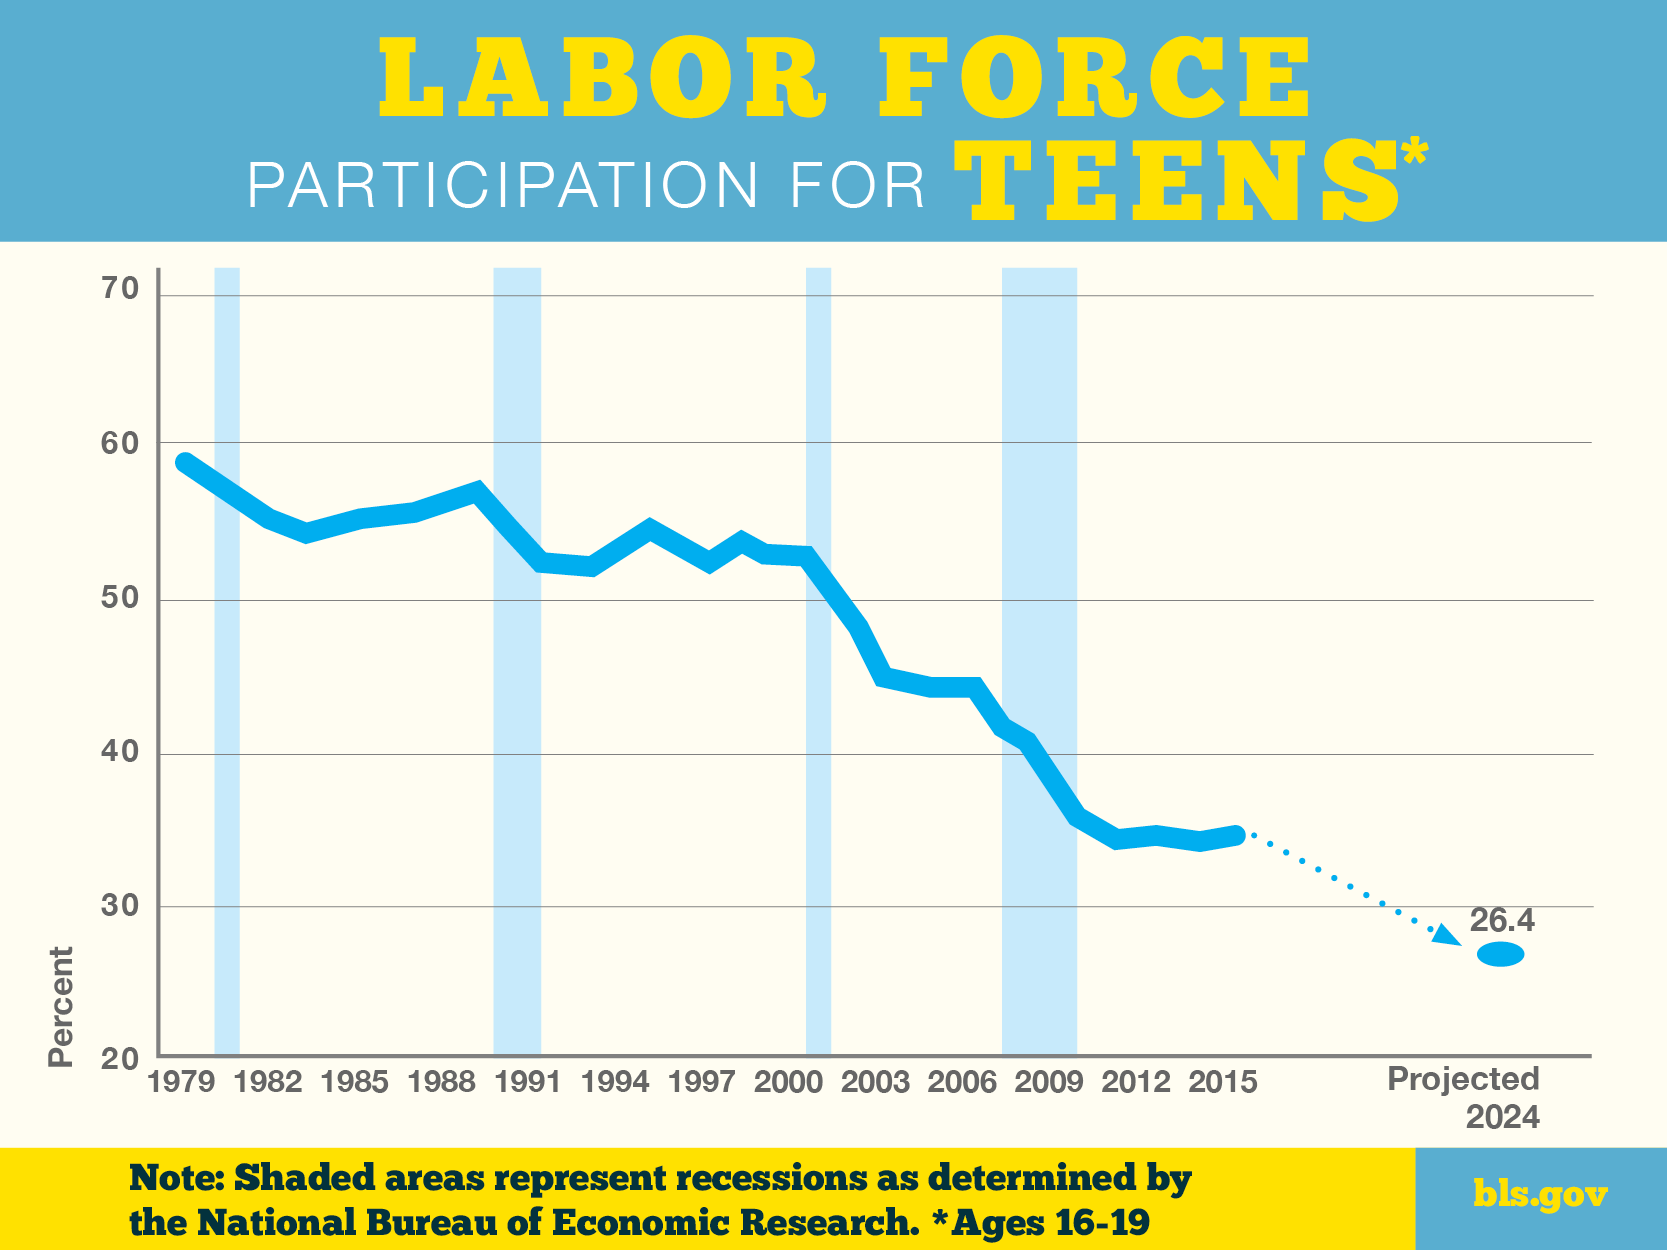 Chart shows teen labor force participation in decline from 1979.